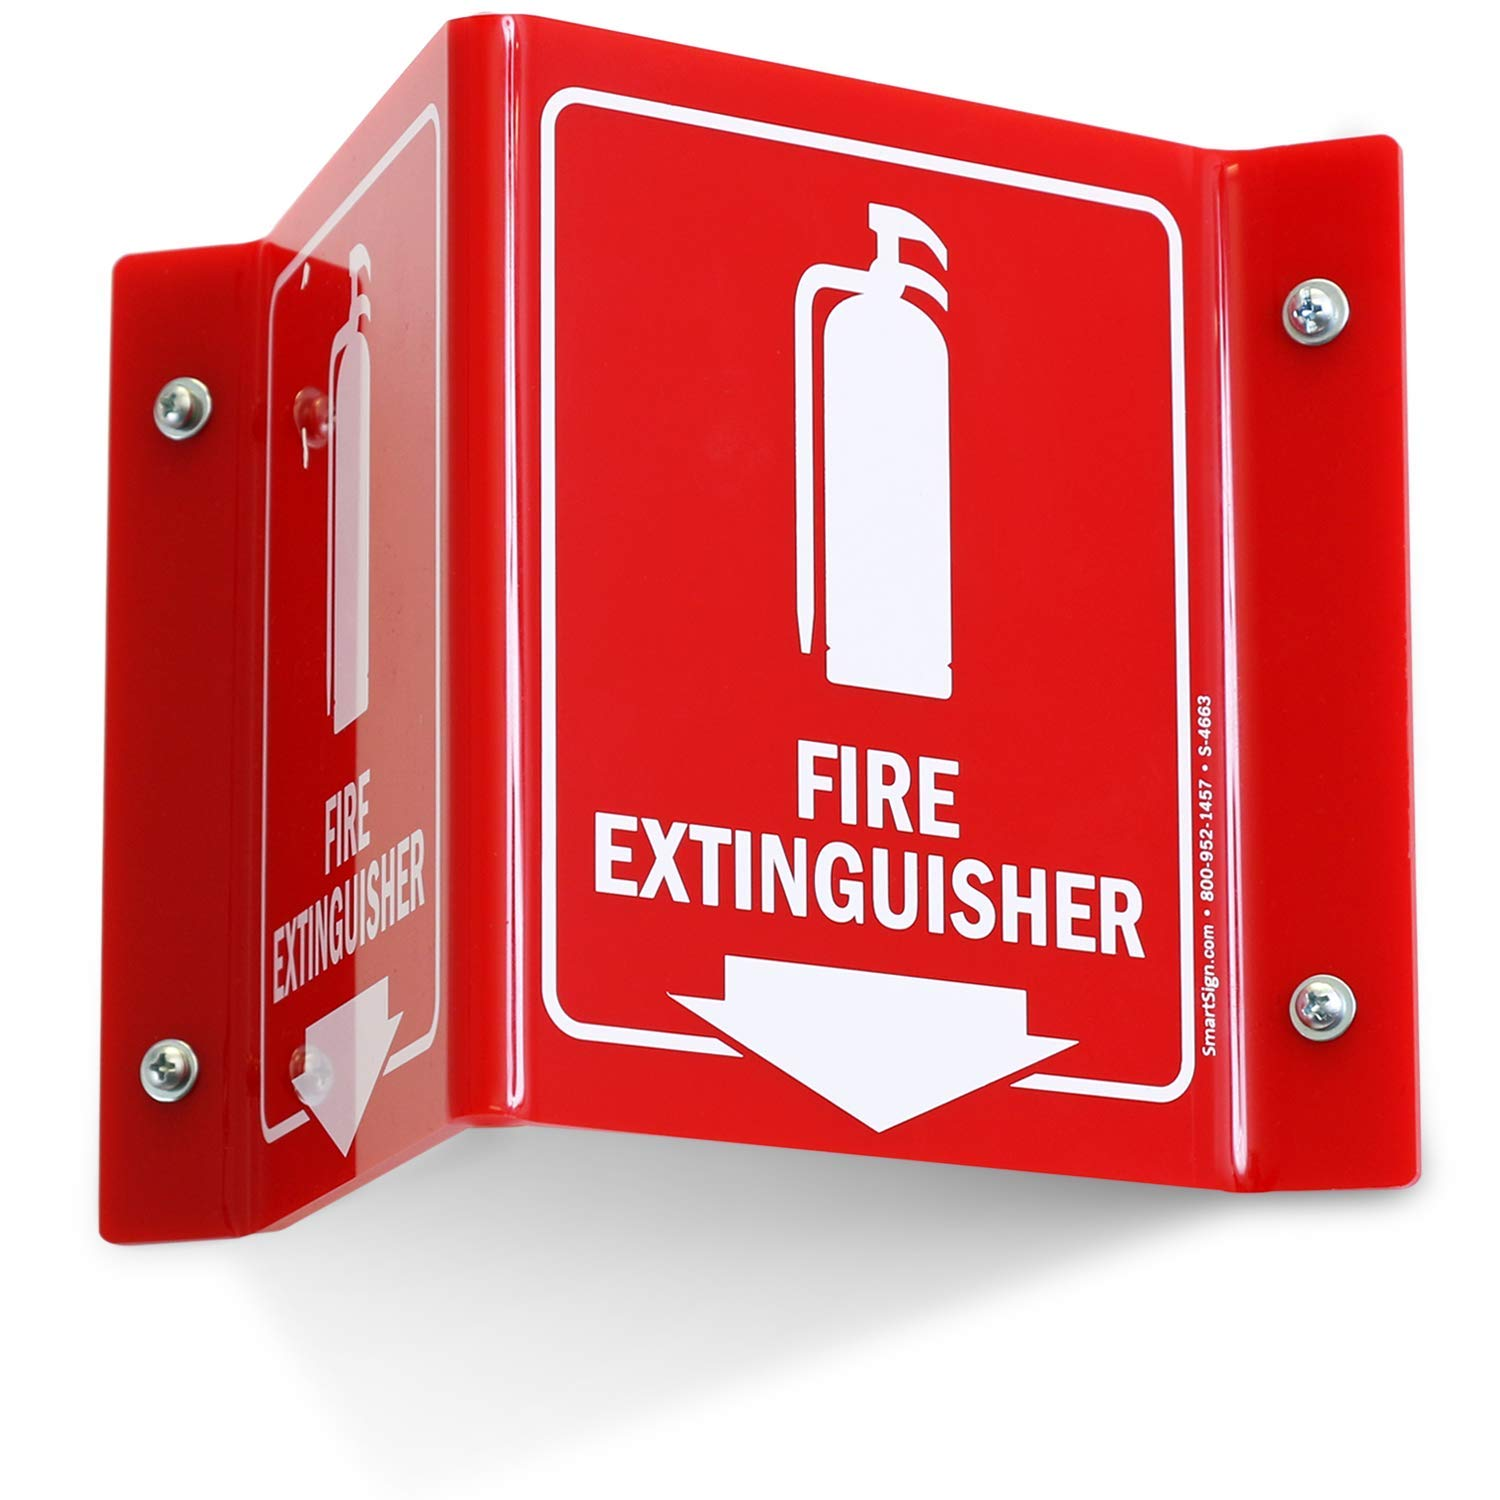 SmartSign''Fire Extinguisher'' Projecting Sign, Fire Extinguisher with Down Arrow, Decal-Based, Print on Both Sides | 5'' x 6'' Polished Acrylic